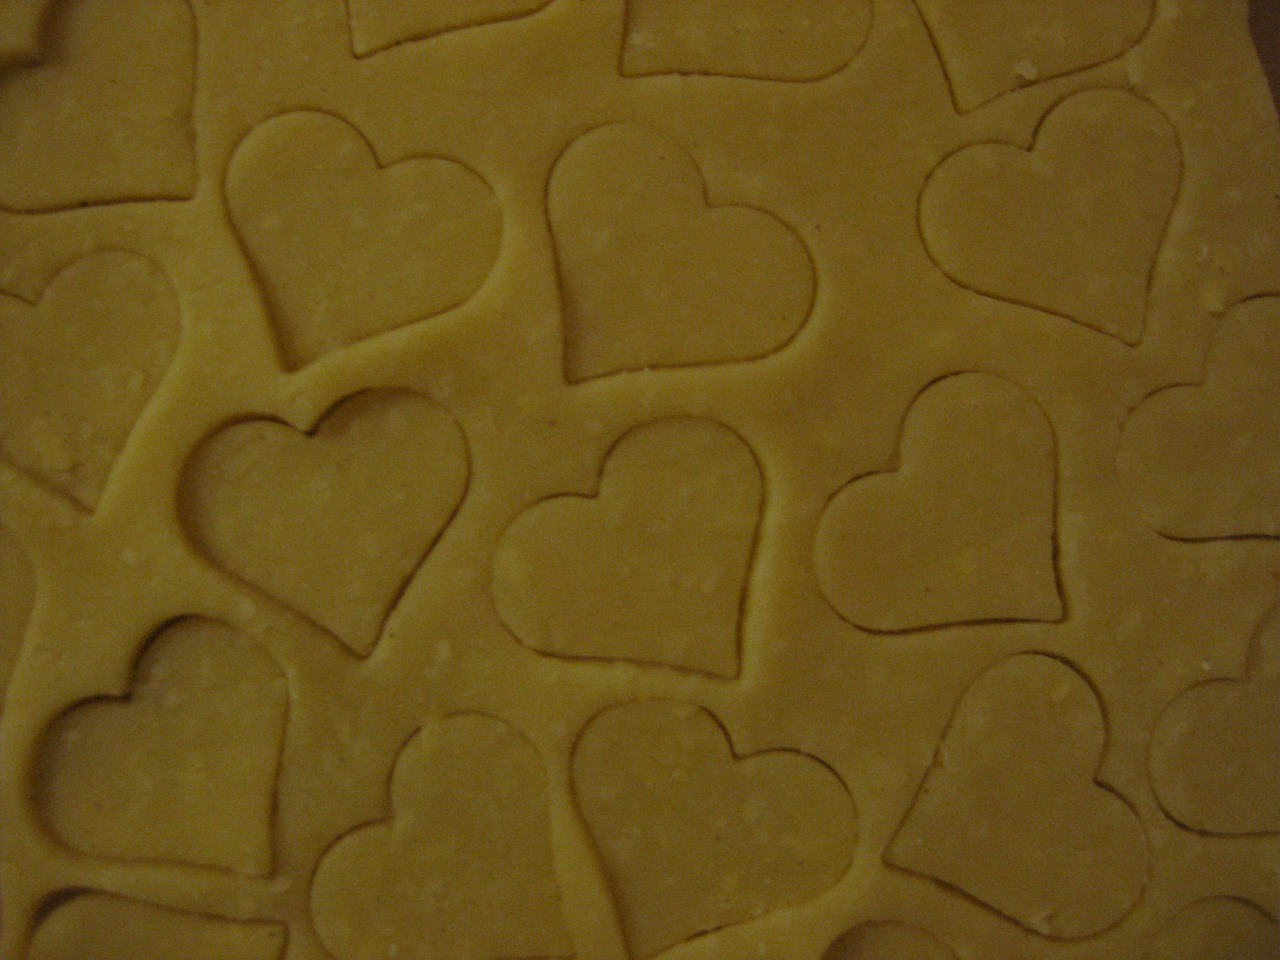 bake heart dough free photo